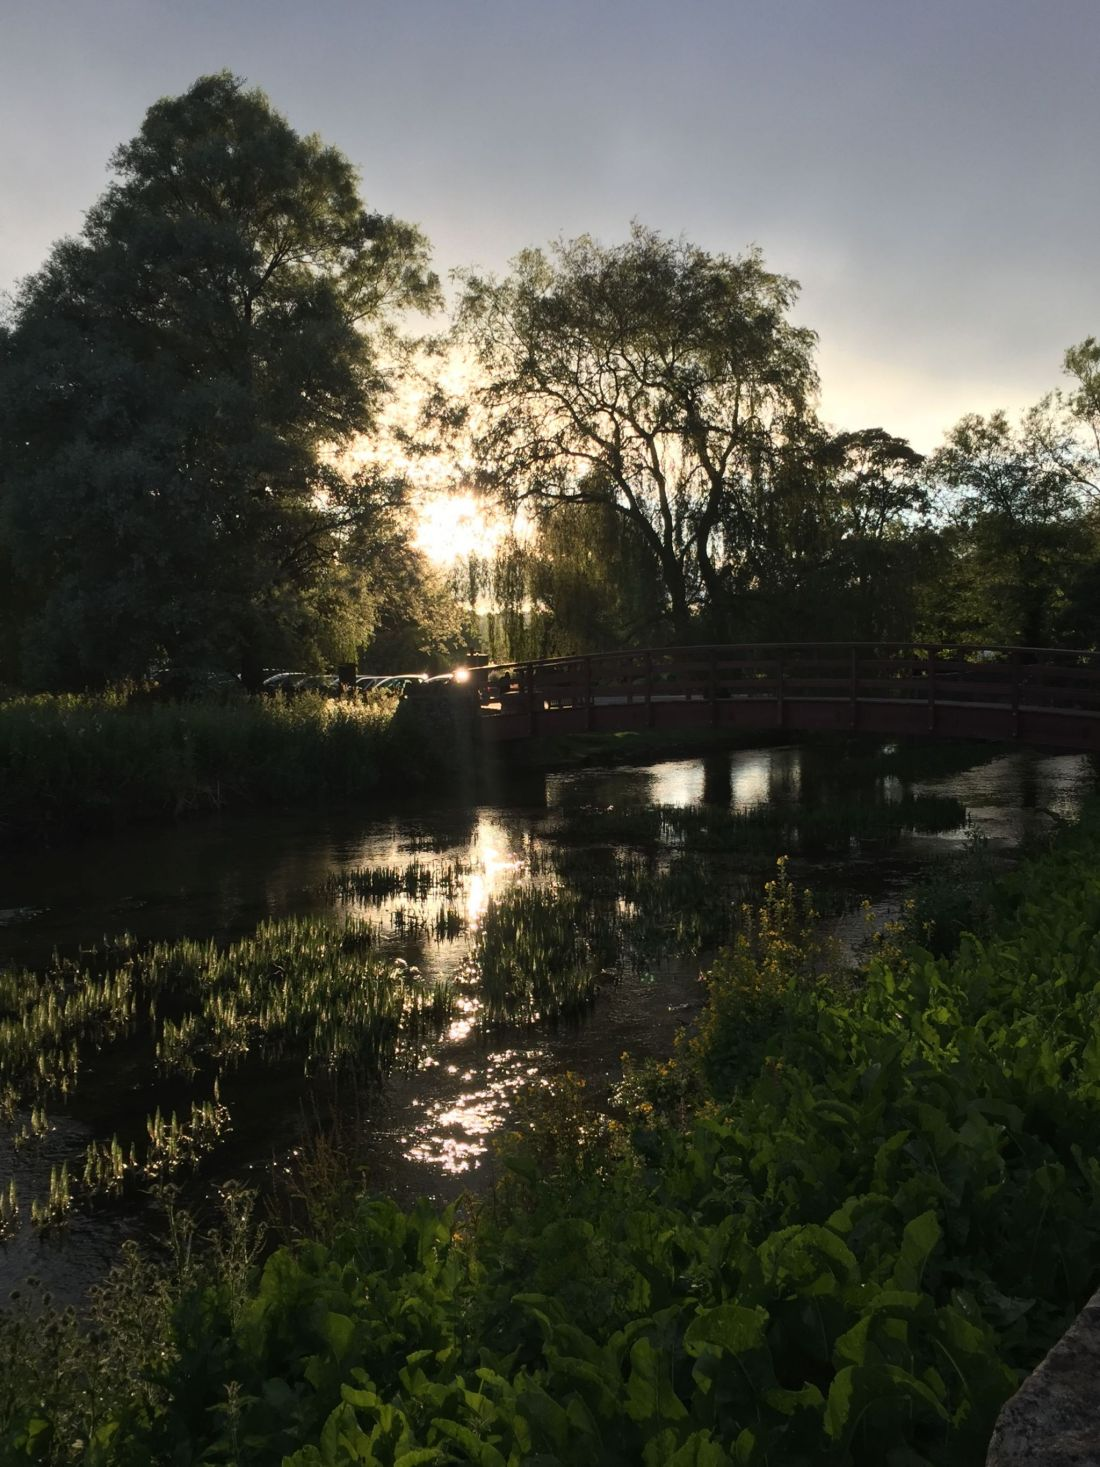 Sunset in Bibury, Cotswolds